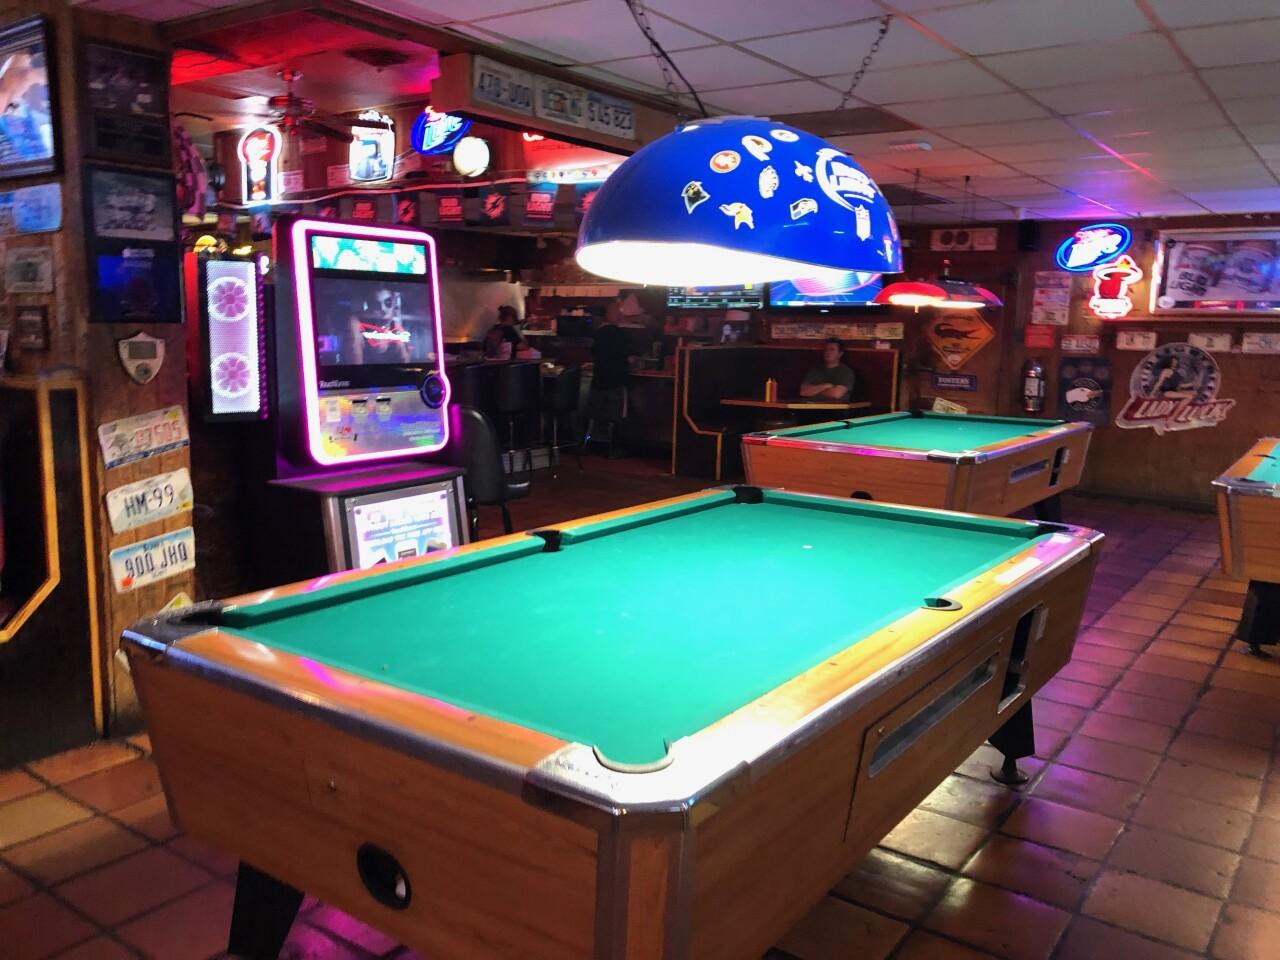 There are pool tables and a Touch Tunes Juke Box.